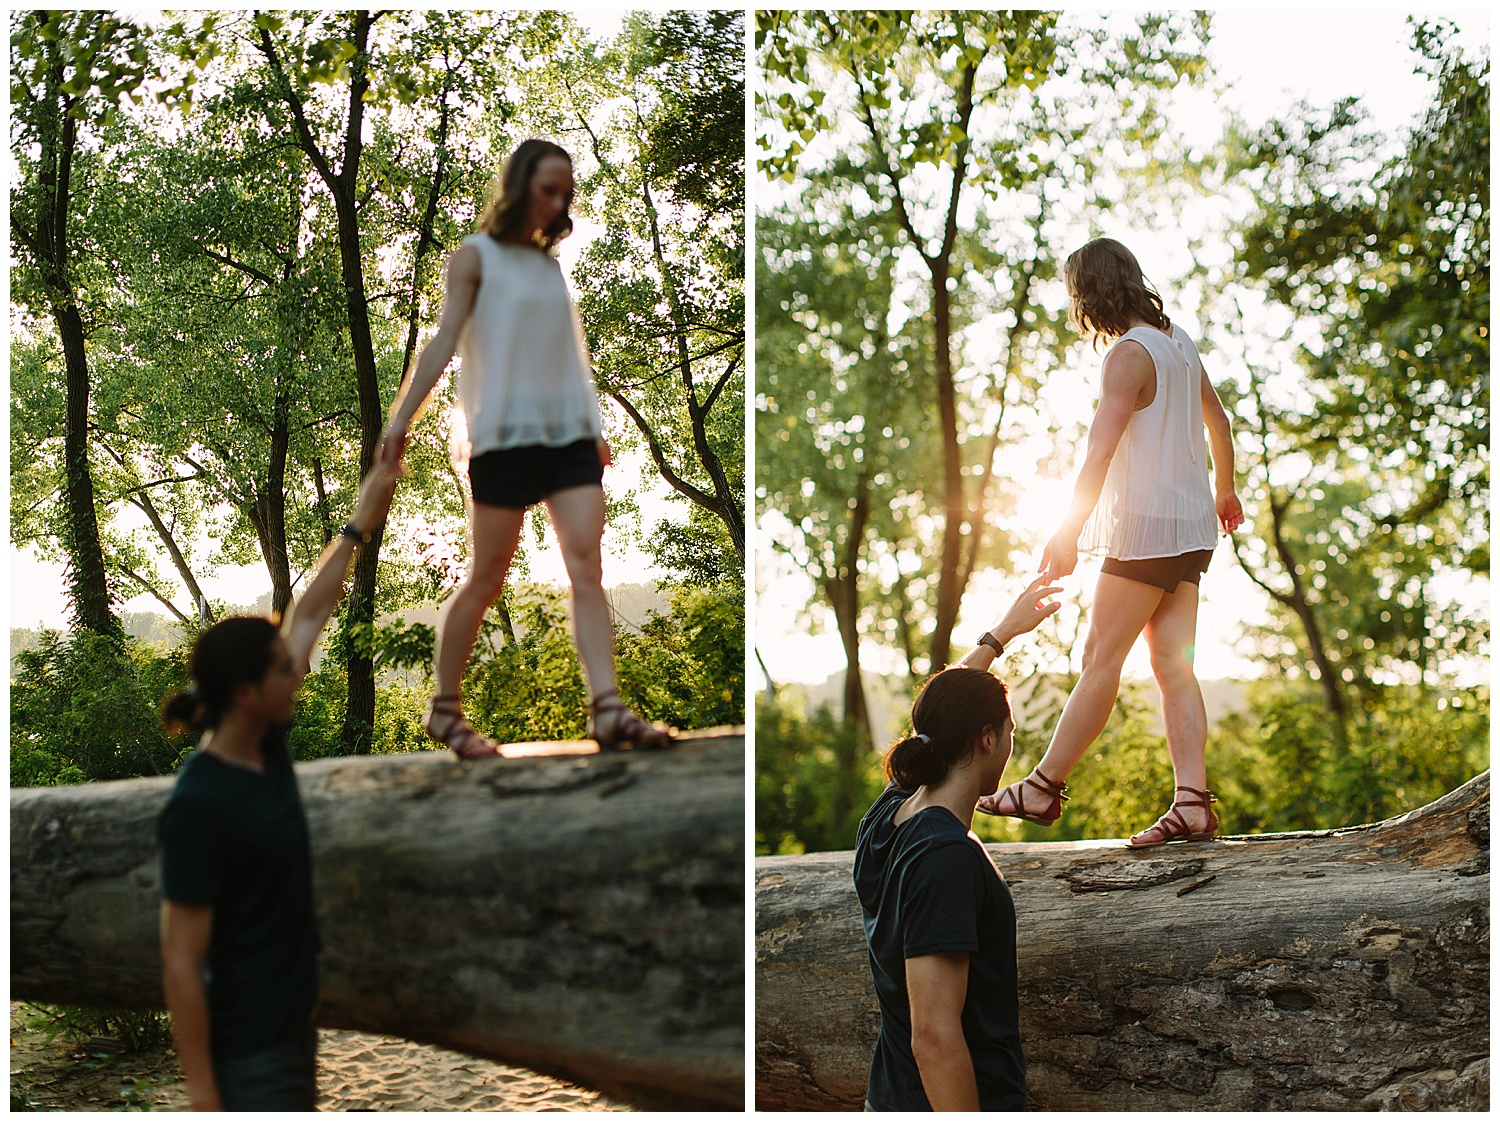 trent.and.kendra.photography.falls.of.the.ohio.engagement.session-13.jpg